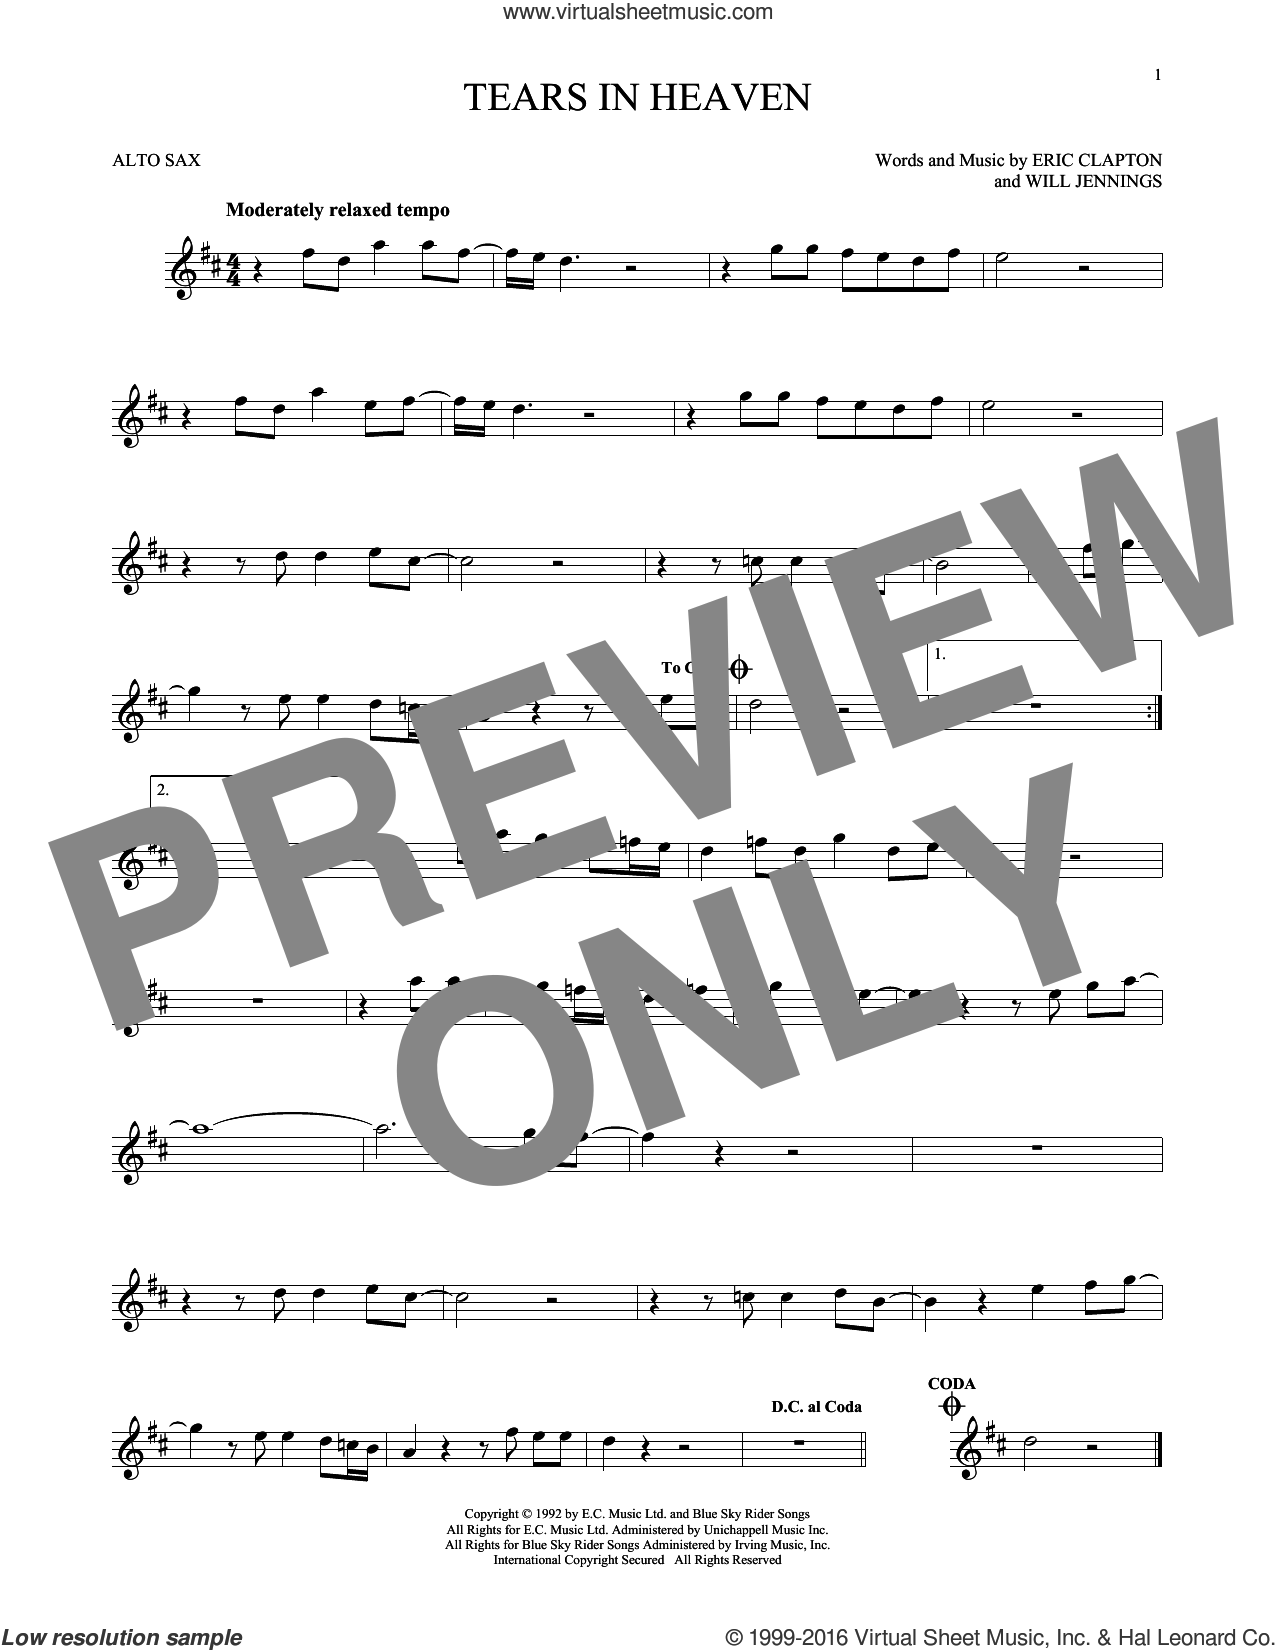 Tears In Heaven sheet music for alto saxophone solo by Will Jennings and Eric Clapton. Score Image Preview.